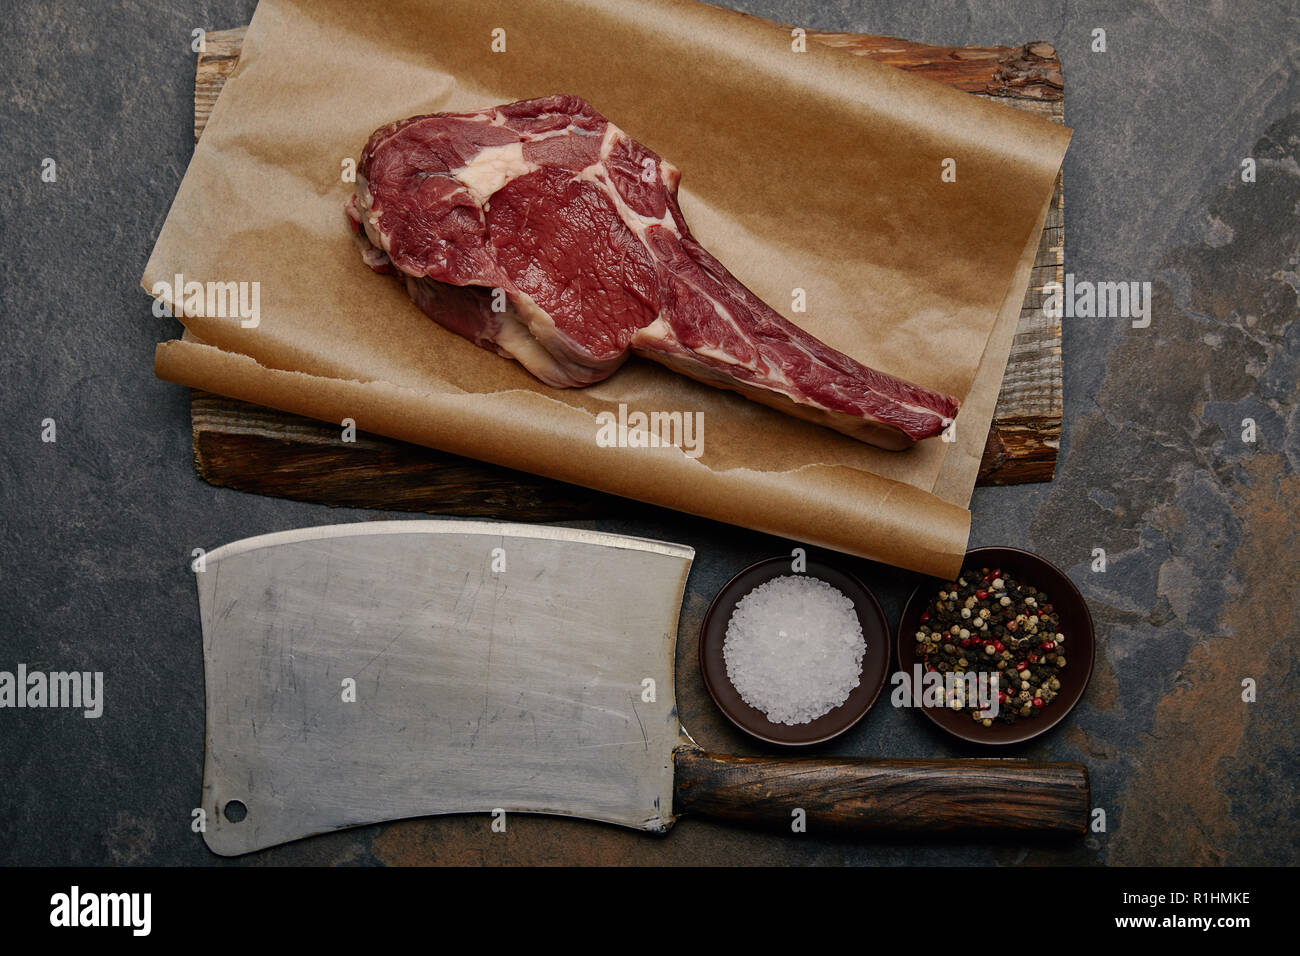 top view of raw rib eye steak on baking paper with butcher knife, spices Stock Photo